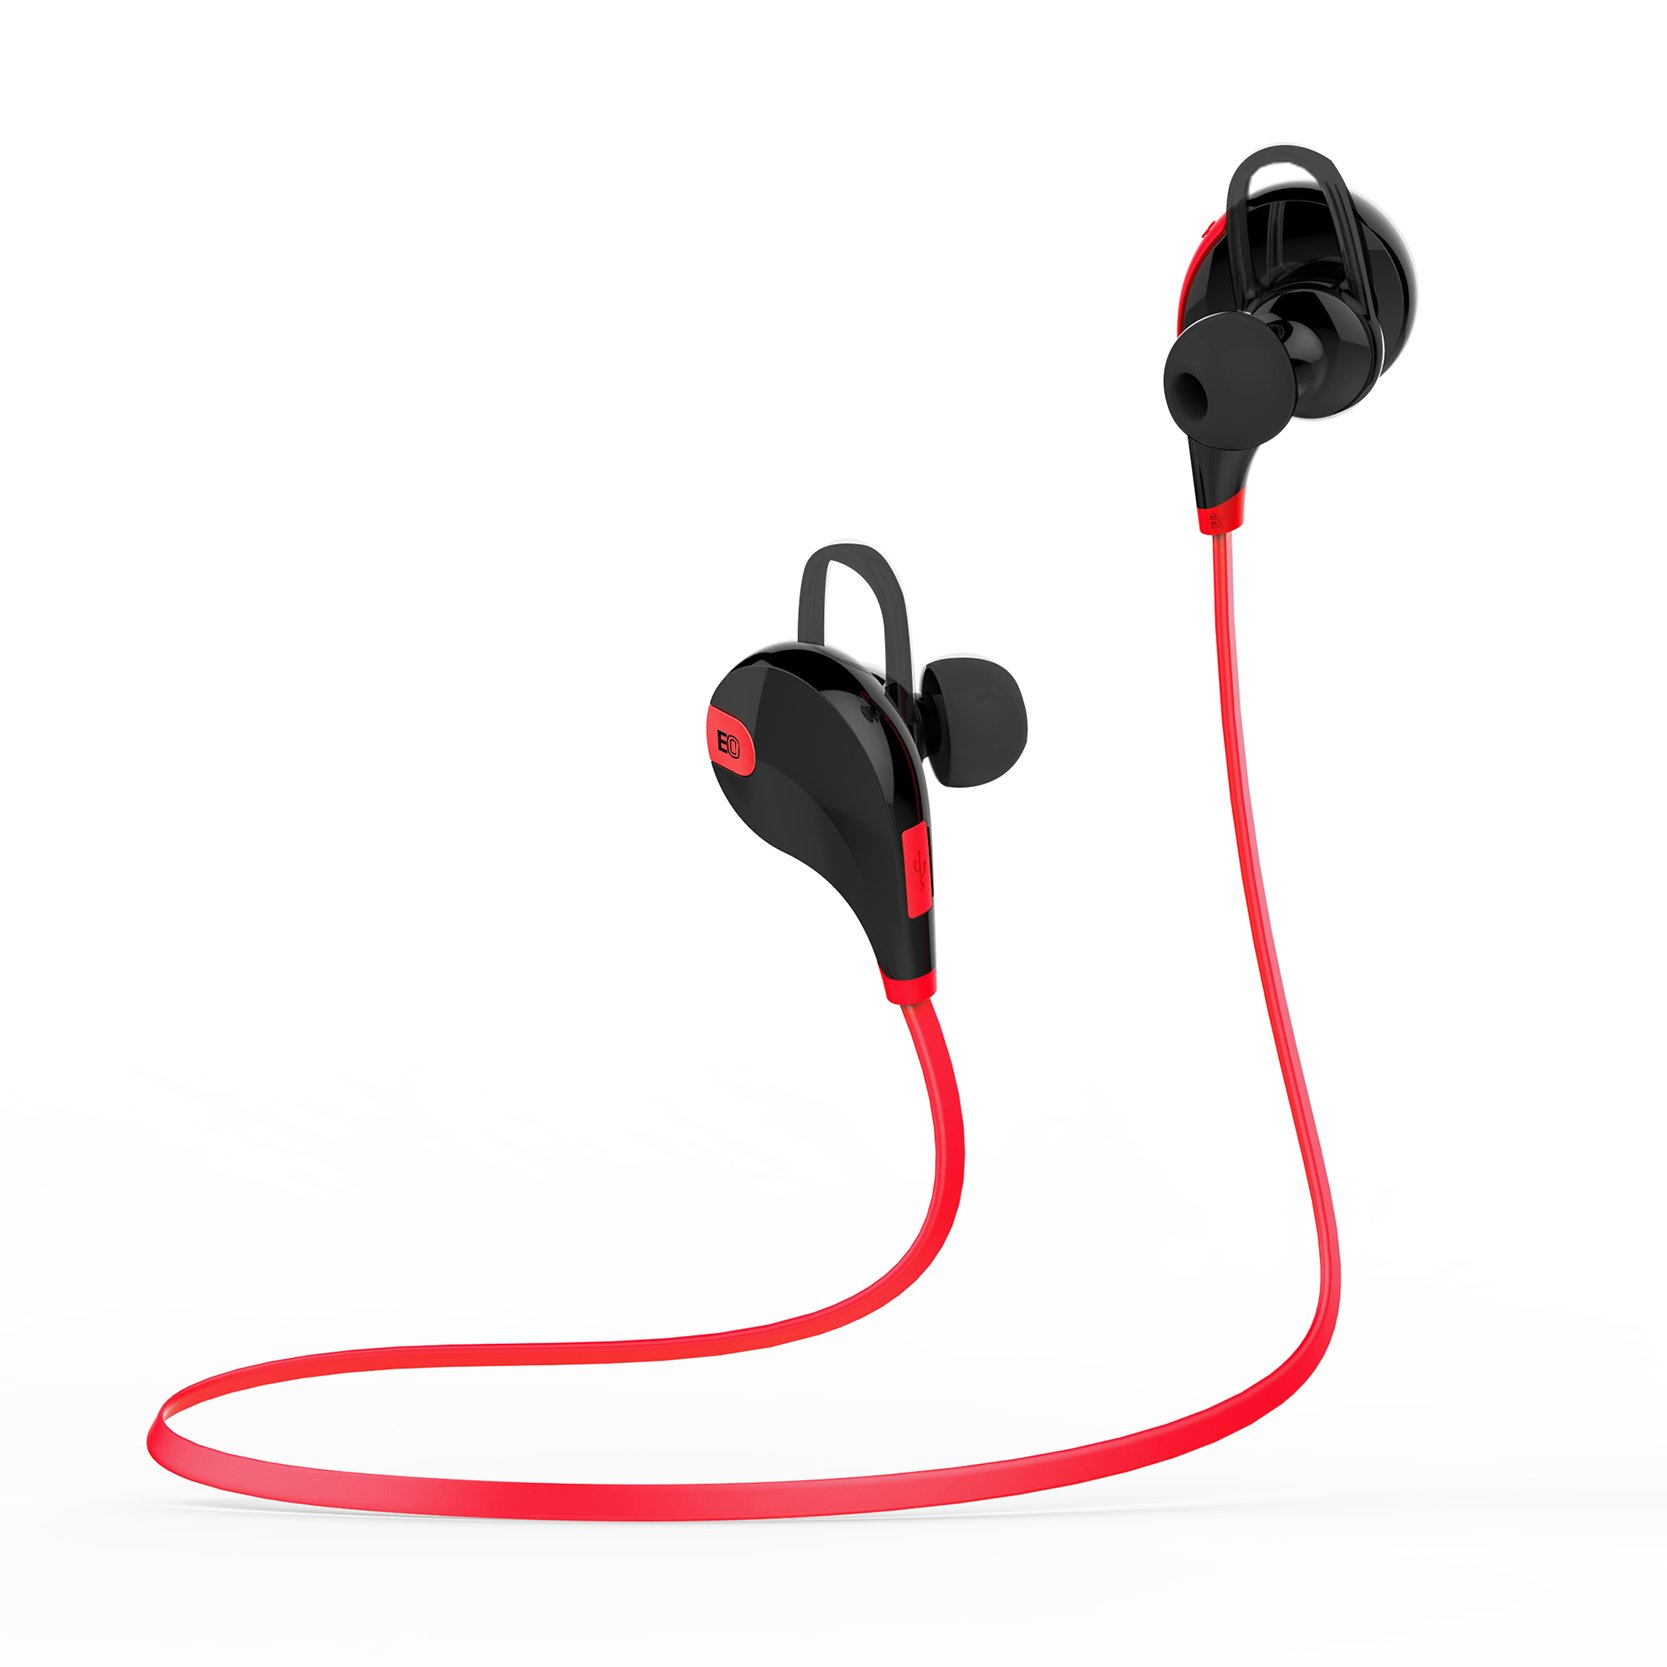 EVOLVEO SportLife XS3, Bluetooth stereo earphone with microphone]